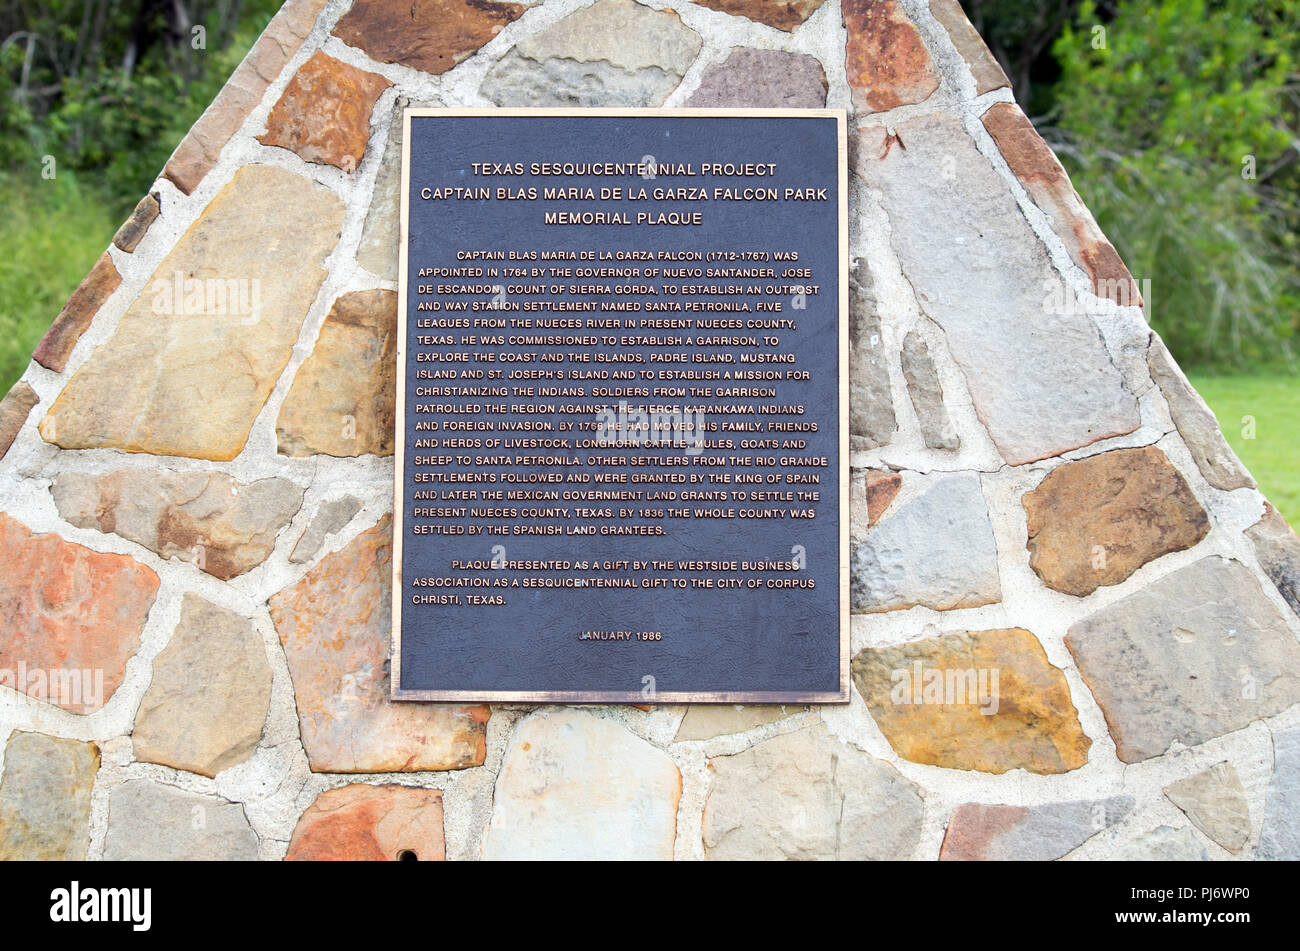 Commemorative plaque in local park describes early settlement of Nueces County, Texas USA by the Spanish. - Stock Image